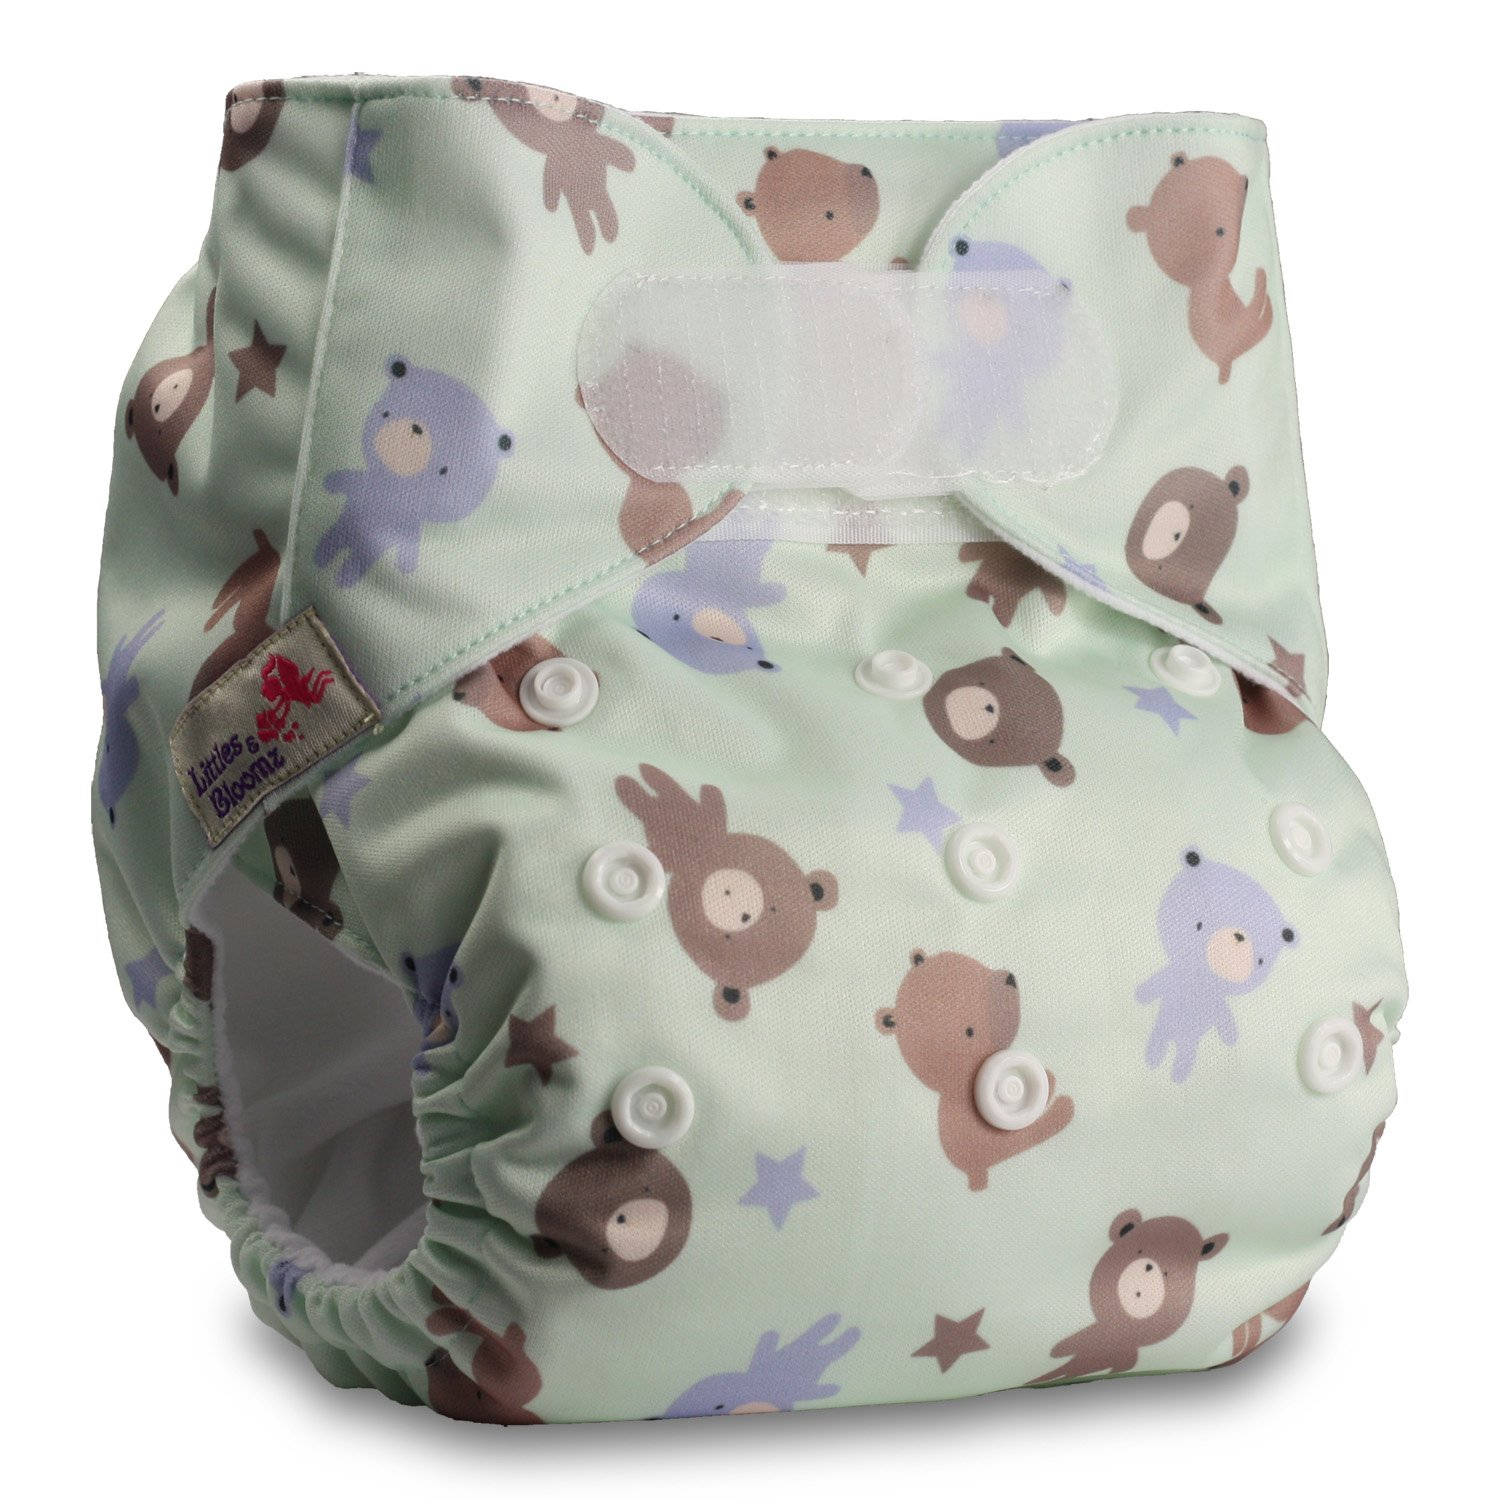 Littles & Bloomz, Reusable Pocket Cloth Nappy, Fastener: Hook-Loop, Set of 1, Pattern 31, With 2 Bamboo Inserts